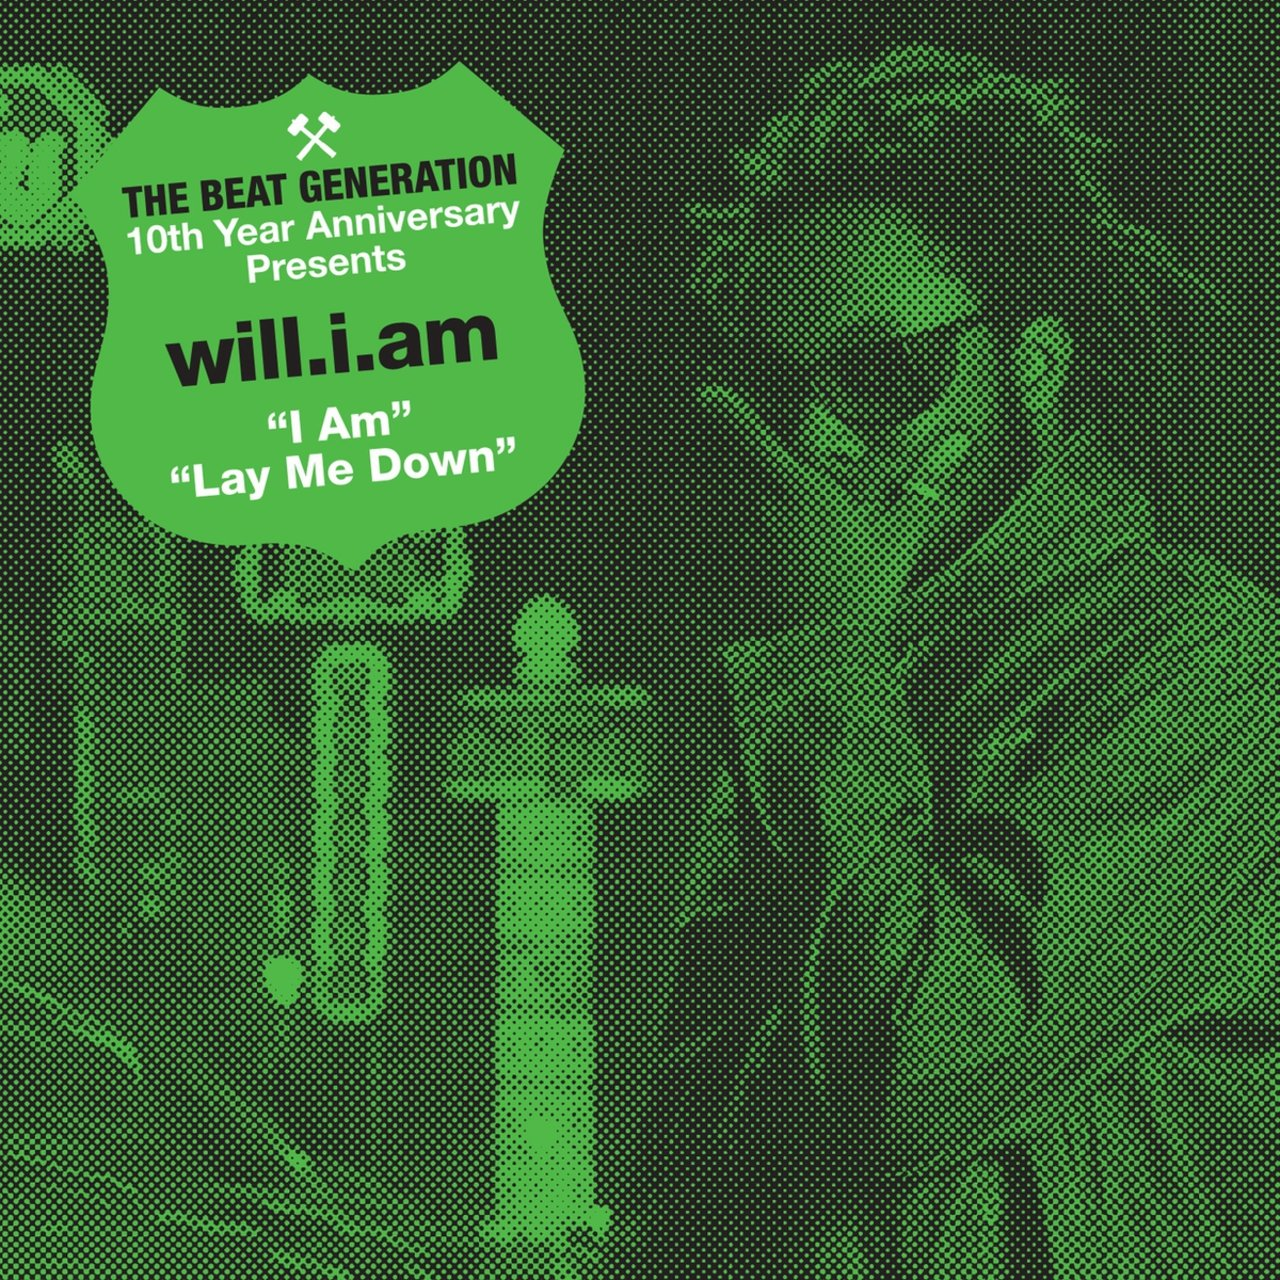 The Beat Generation 10th Anniversary Presents: will.i.am - I Am B/w Lay Me Down